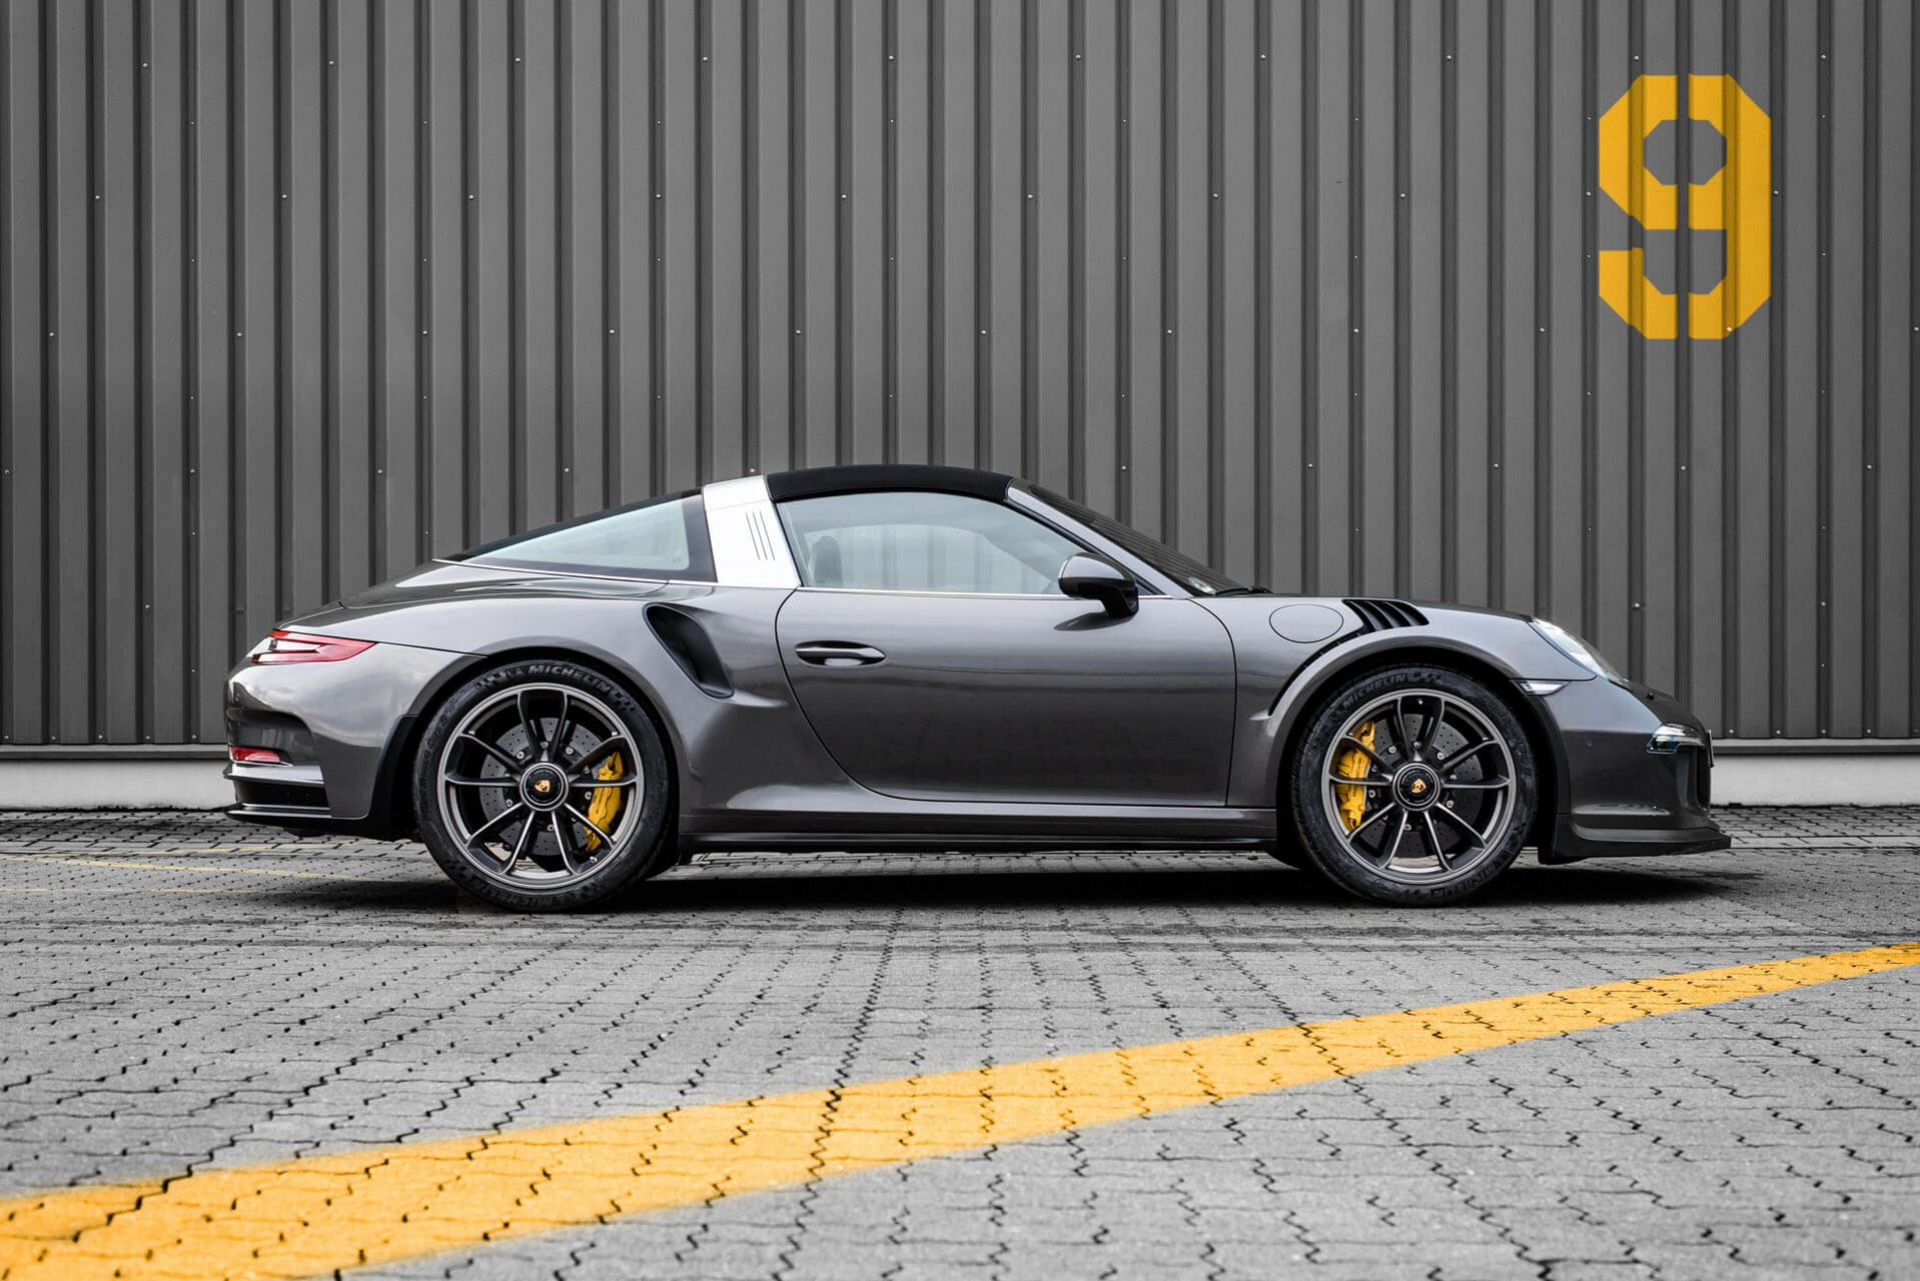 991 2 porsche 911 targa 4 gts gets the 991 1 gt3 rs treatment from mcchip dkr autoevolution. Black Bedroom Furniture Sets. Home Design Ideas